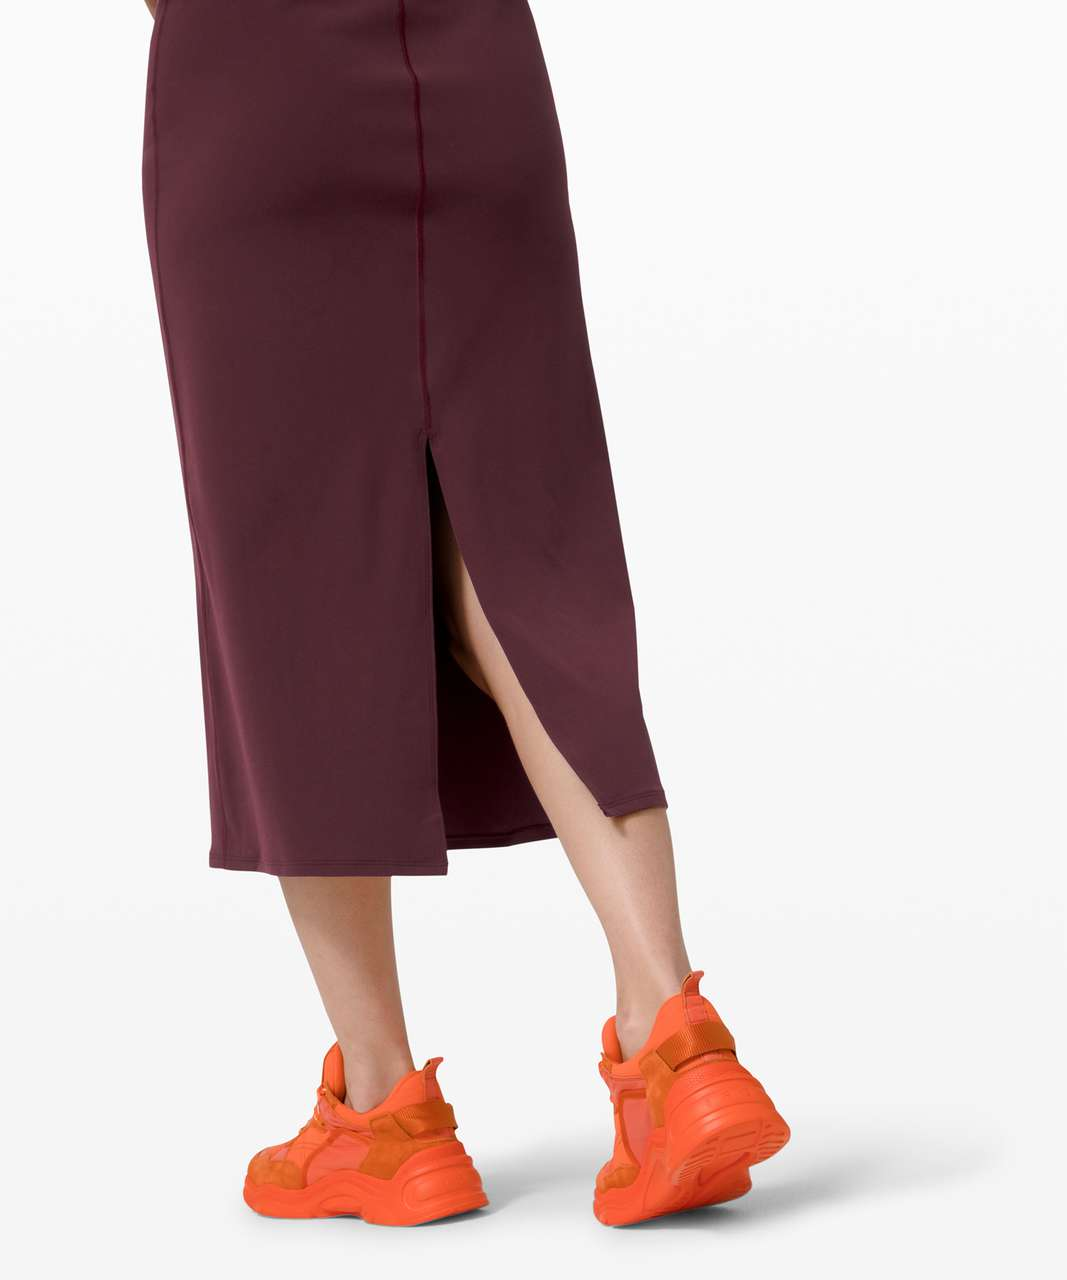 Lululemon All Aligned Midi Dress - Cassis